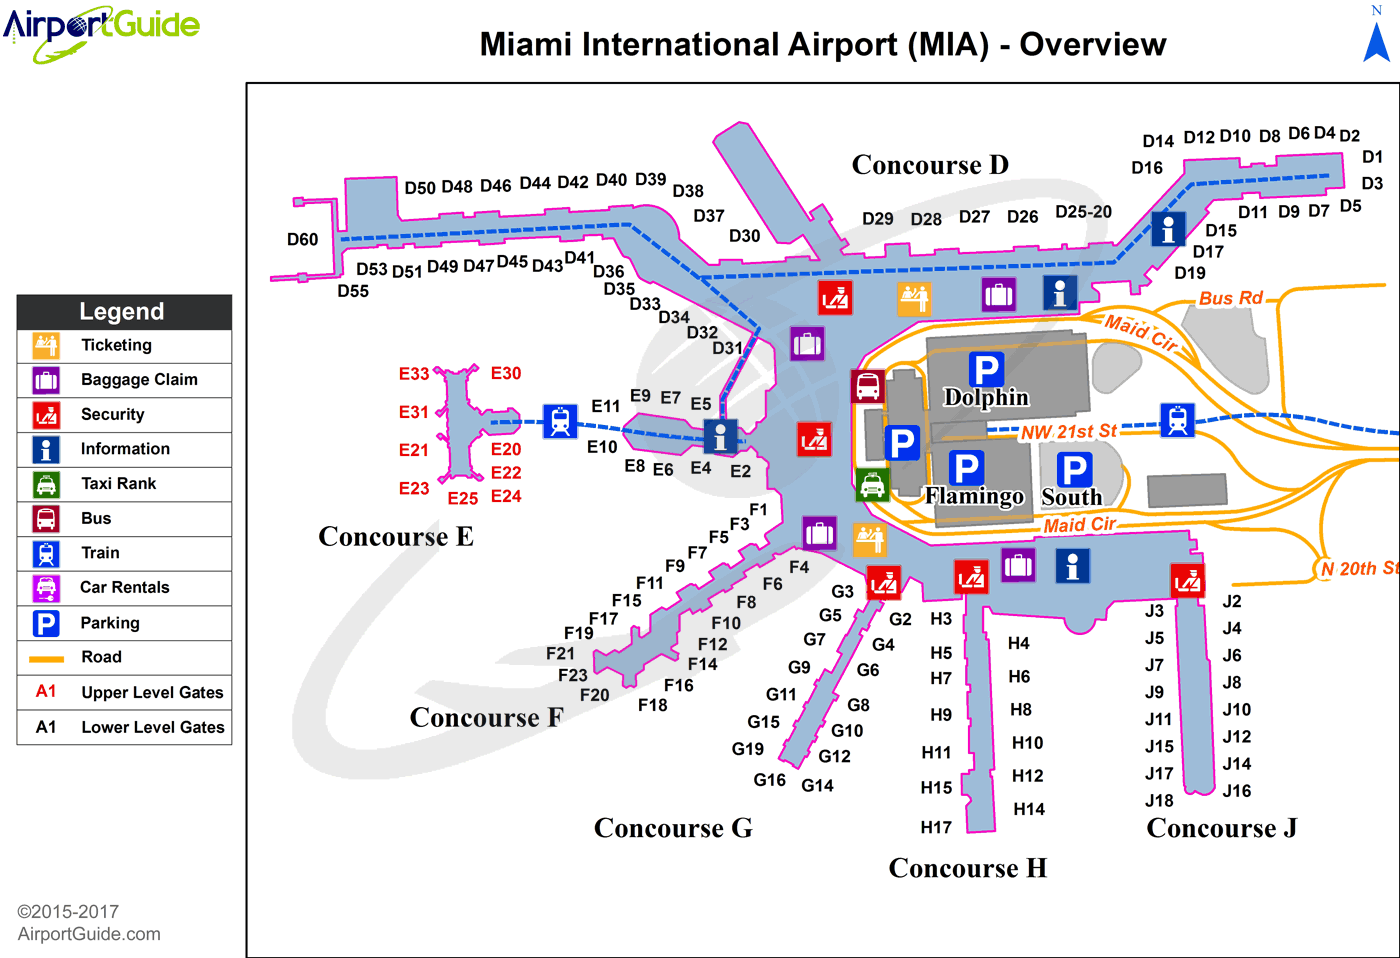 Miami Miami International MIA Airport Terminal Map Overview - Phl terminal map